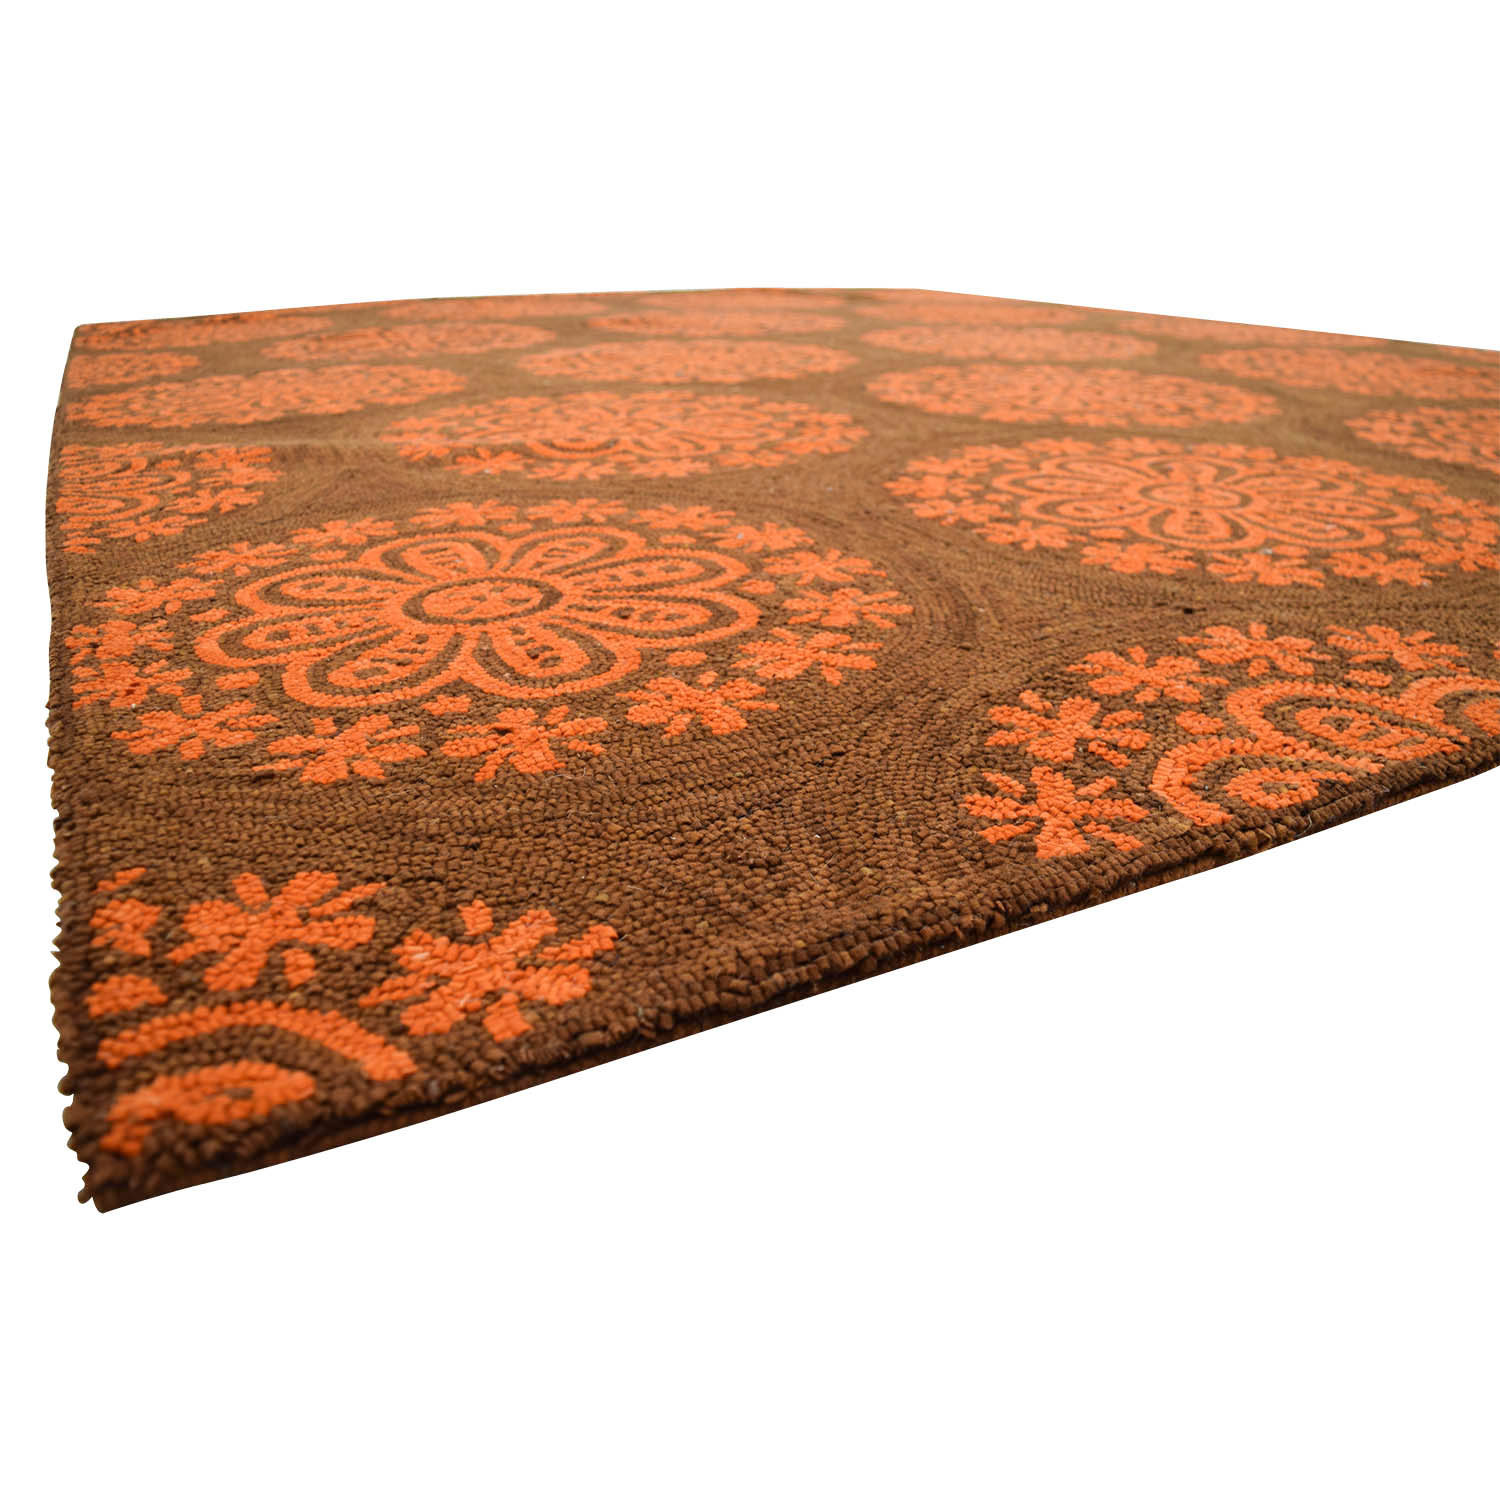 90 off obeetee obeetee brown and orange floral mediallion rug decor. Black Bedroom Furniture Sets. Home Design Ideas